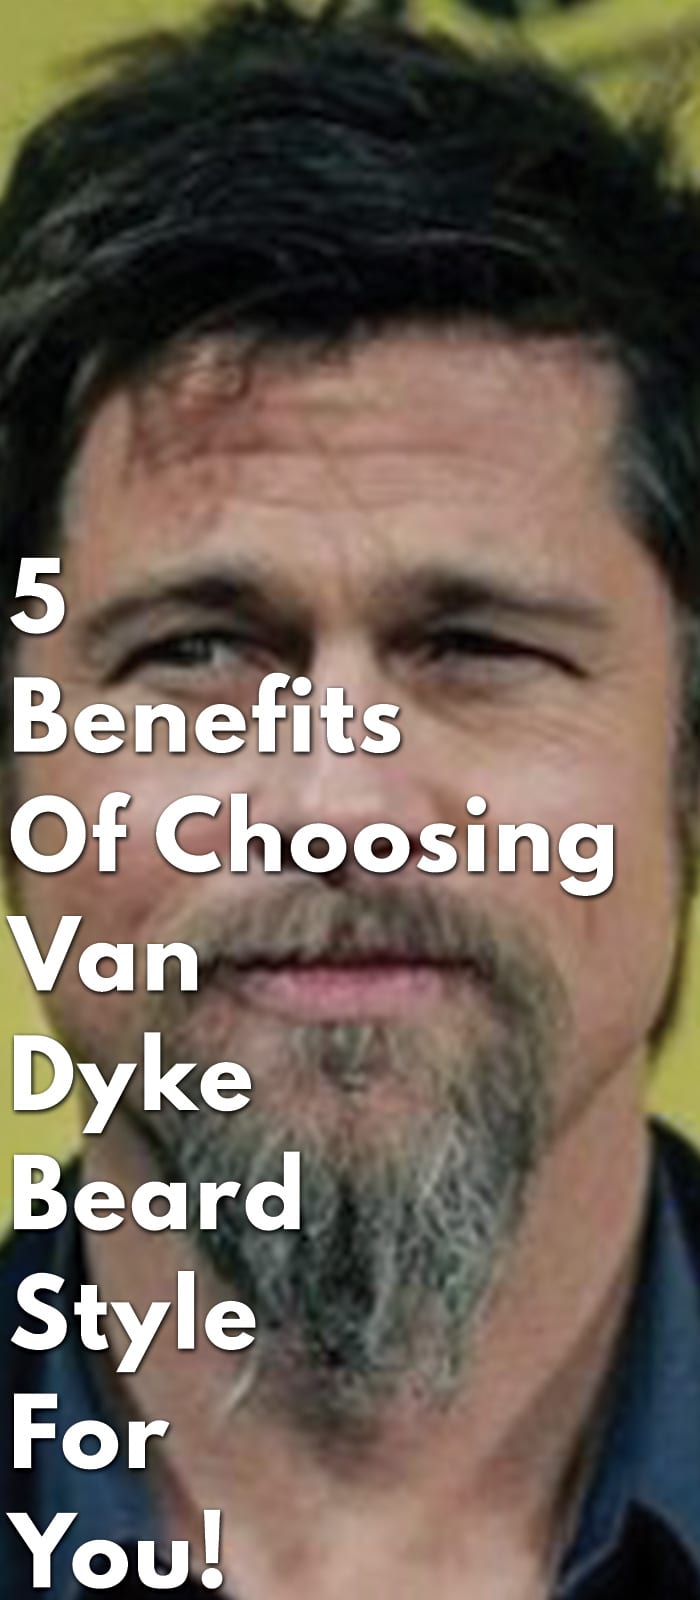 5-Benefits-Of-Choosing-Van-Dyke-Beard-Style-For-You!